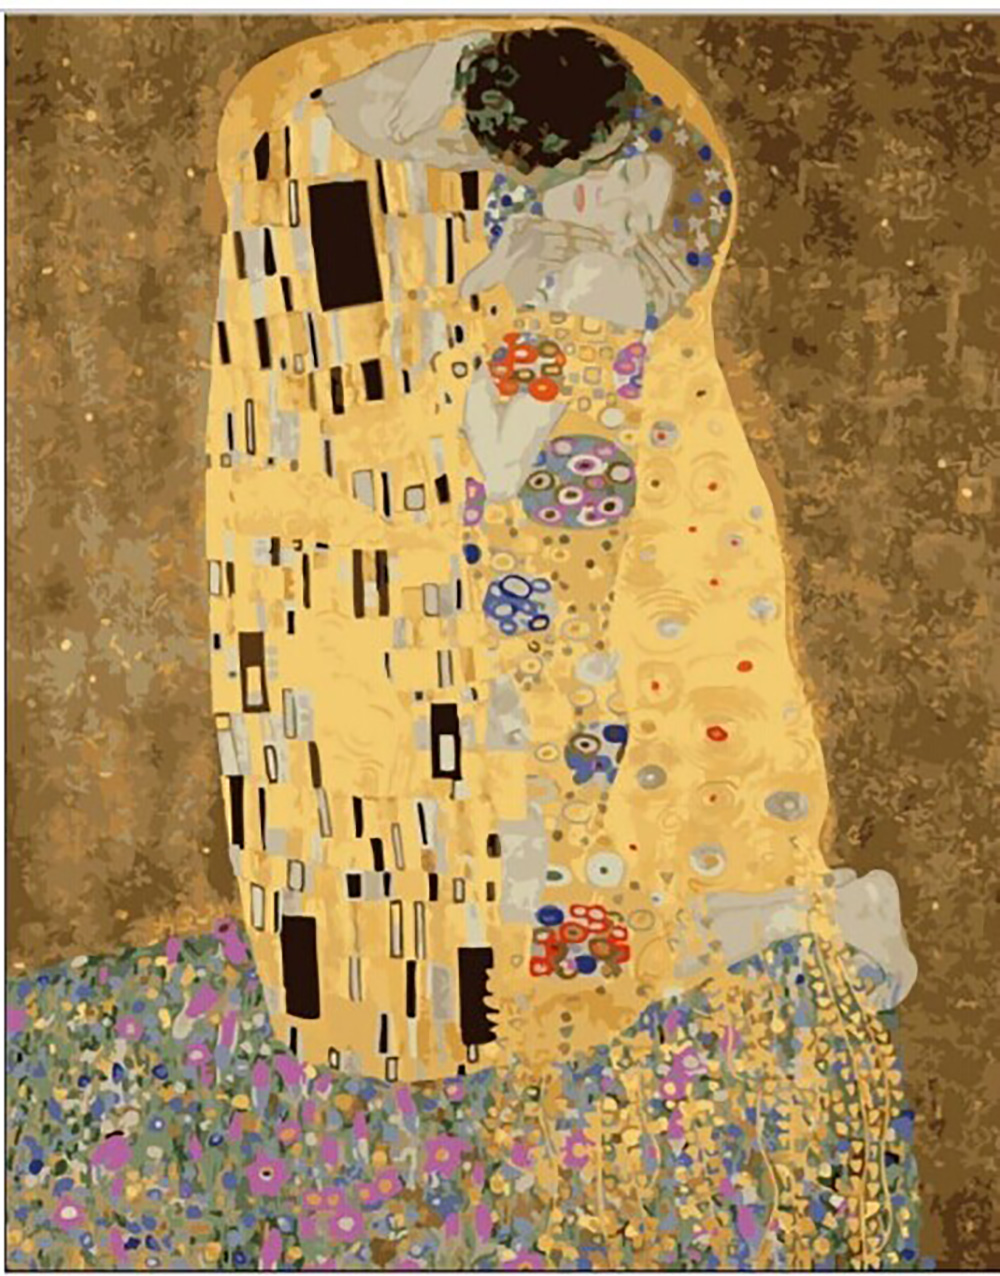 gustav klimt presents essay This year marks the 150th anniversary of the birth of gustav klimt  village  earlier that year offered her a choice of three t-shirts as a thank-you gift  in  1905 freud published three essays on the theory of sexuality, a book.